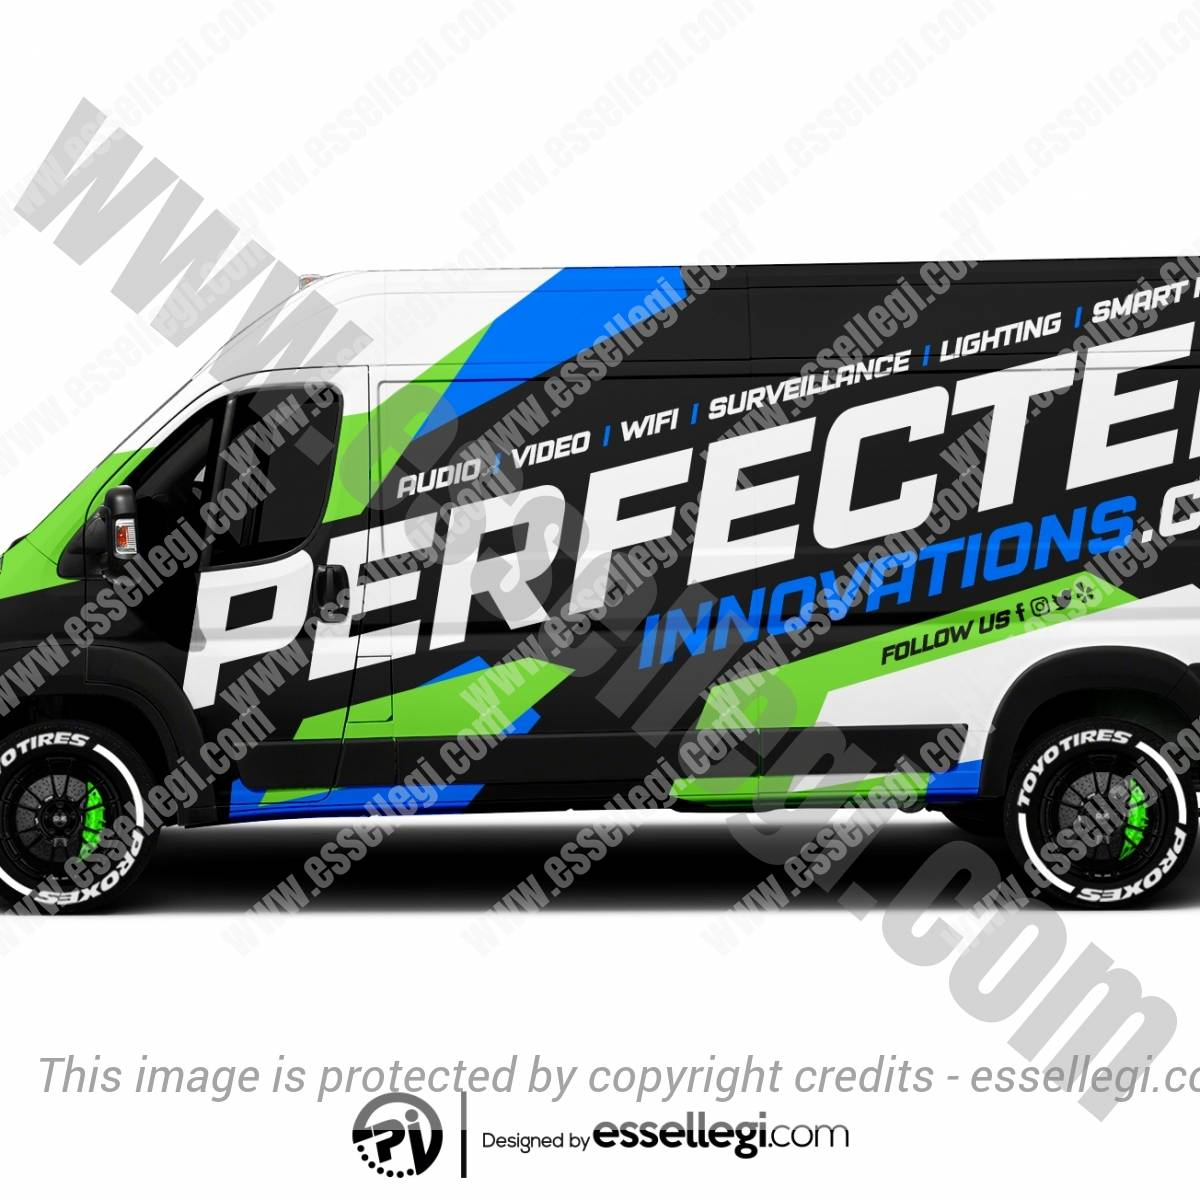 PERFECTED INNOVATIONS | VAN WRAP DESIGN 🇺🇸